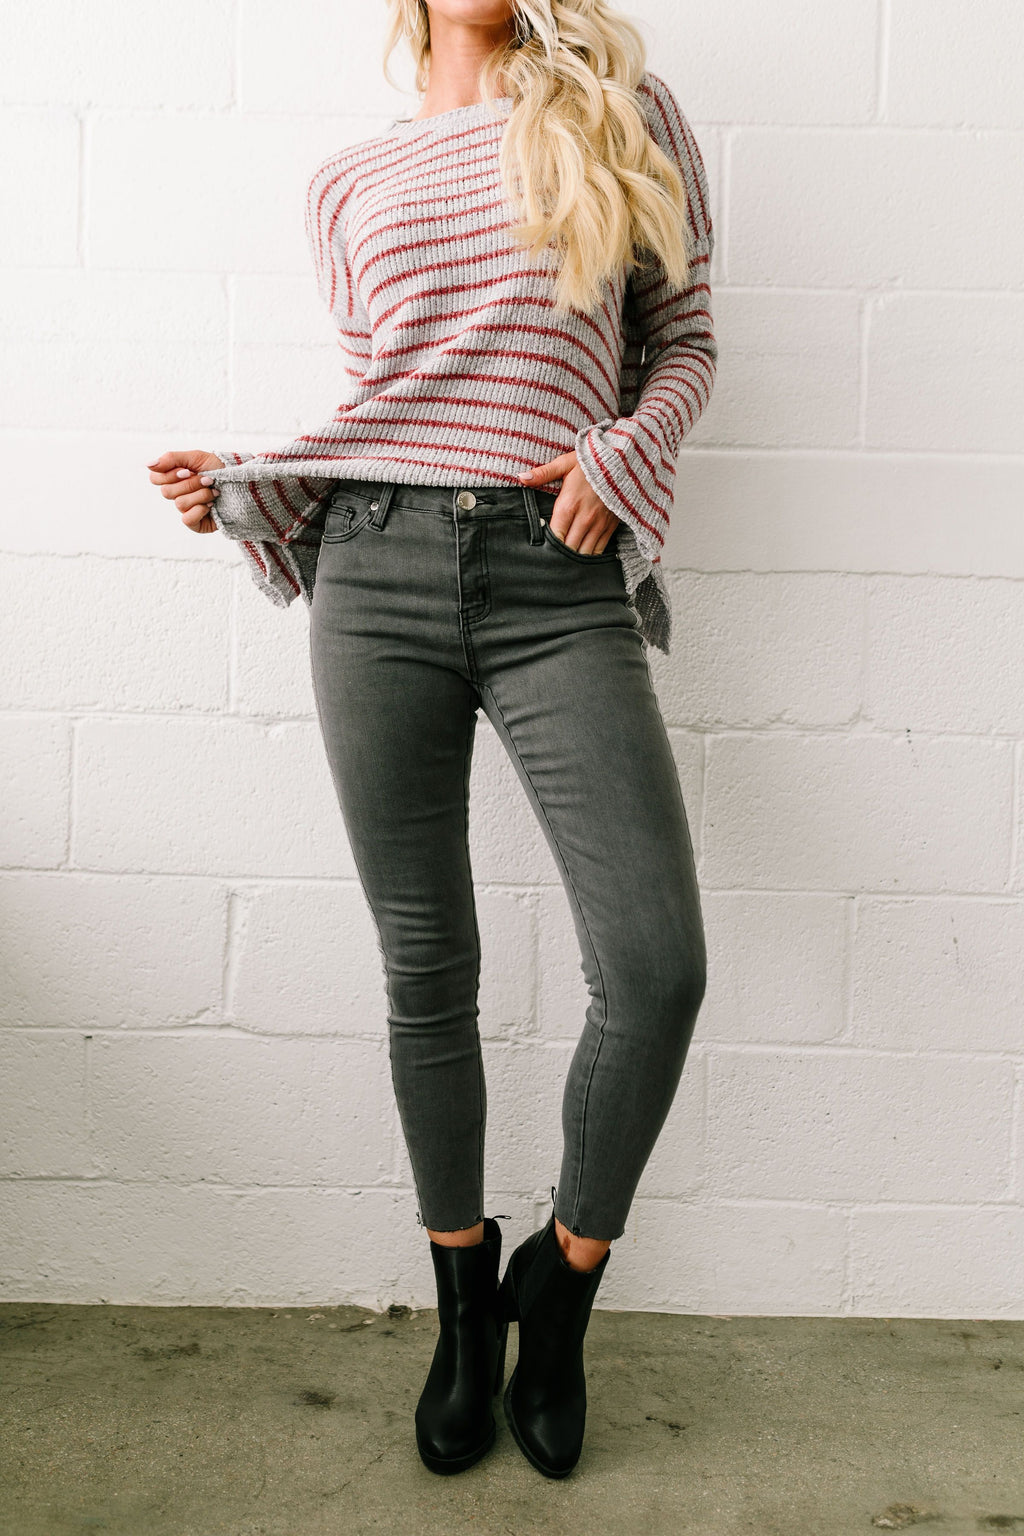 Las Velvet Strip Dark Gray Skinny Jeans